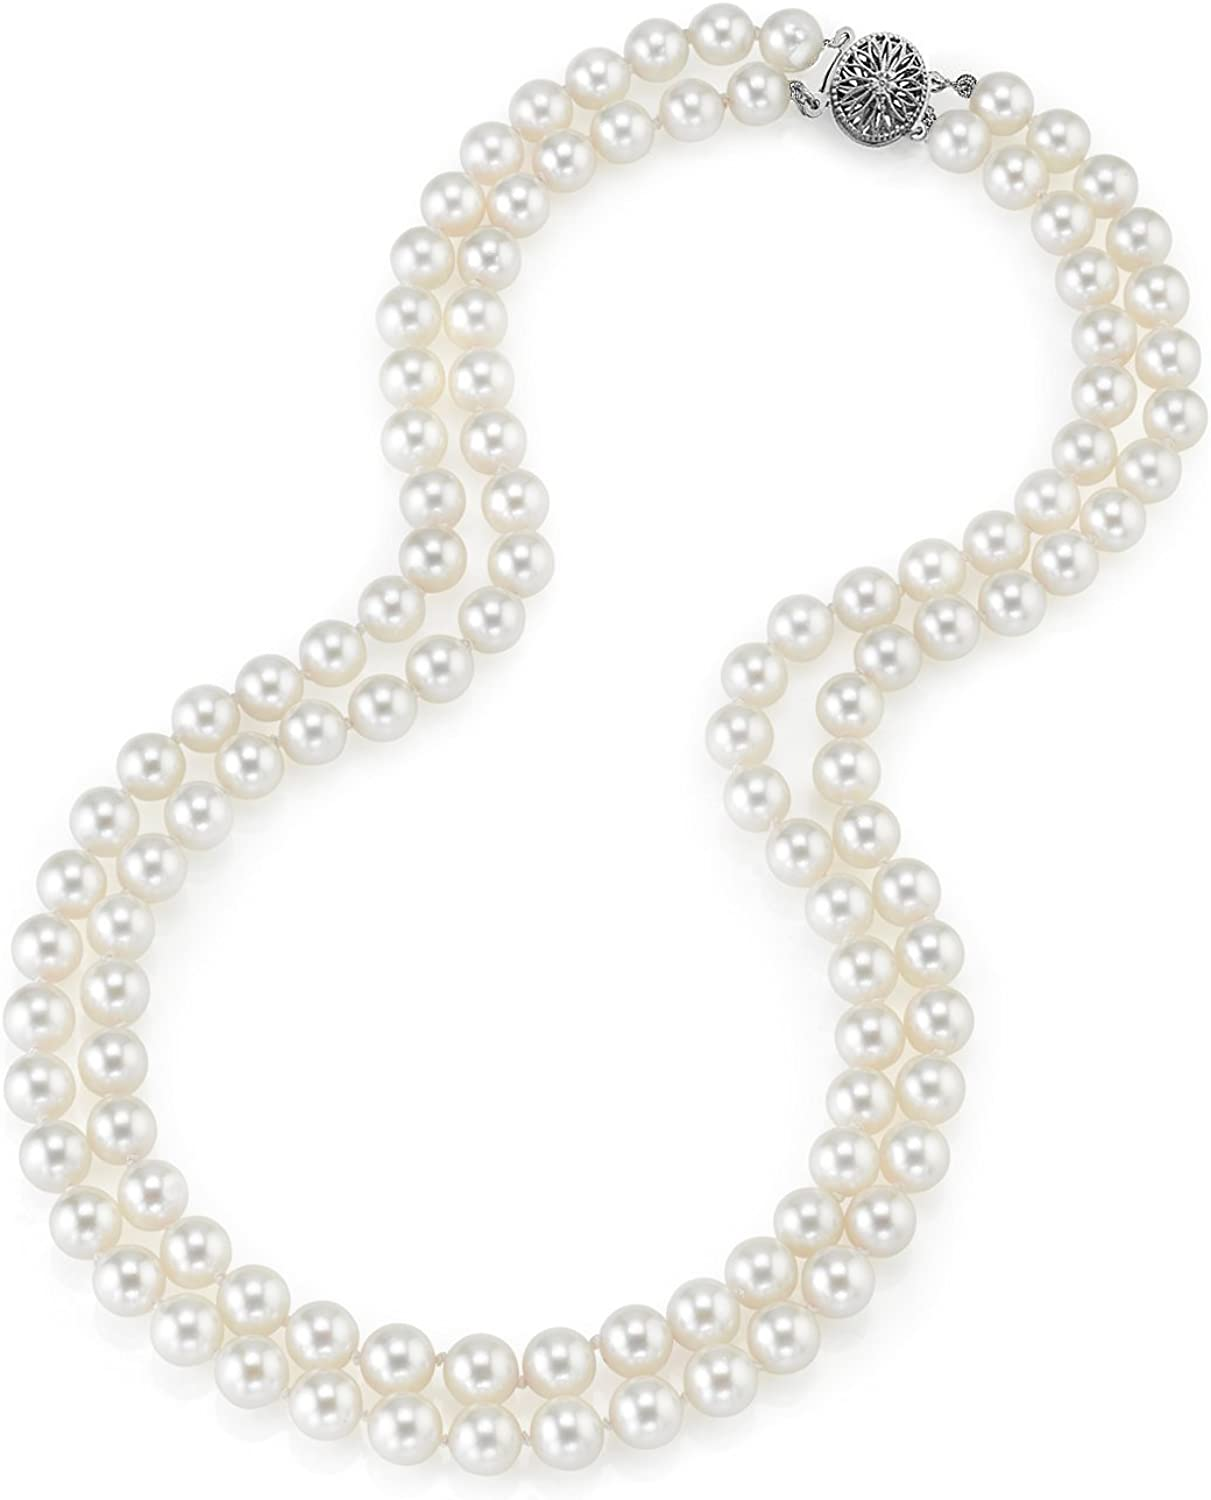 """18/"""" 10-11MM AAA+ GENUINE WHITE SOUTH SEA AKOYA PEARL NECKLACE"""